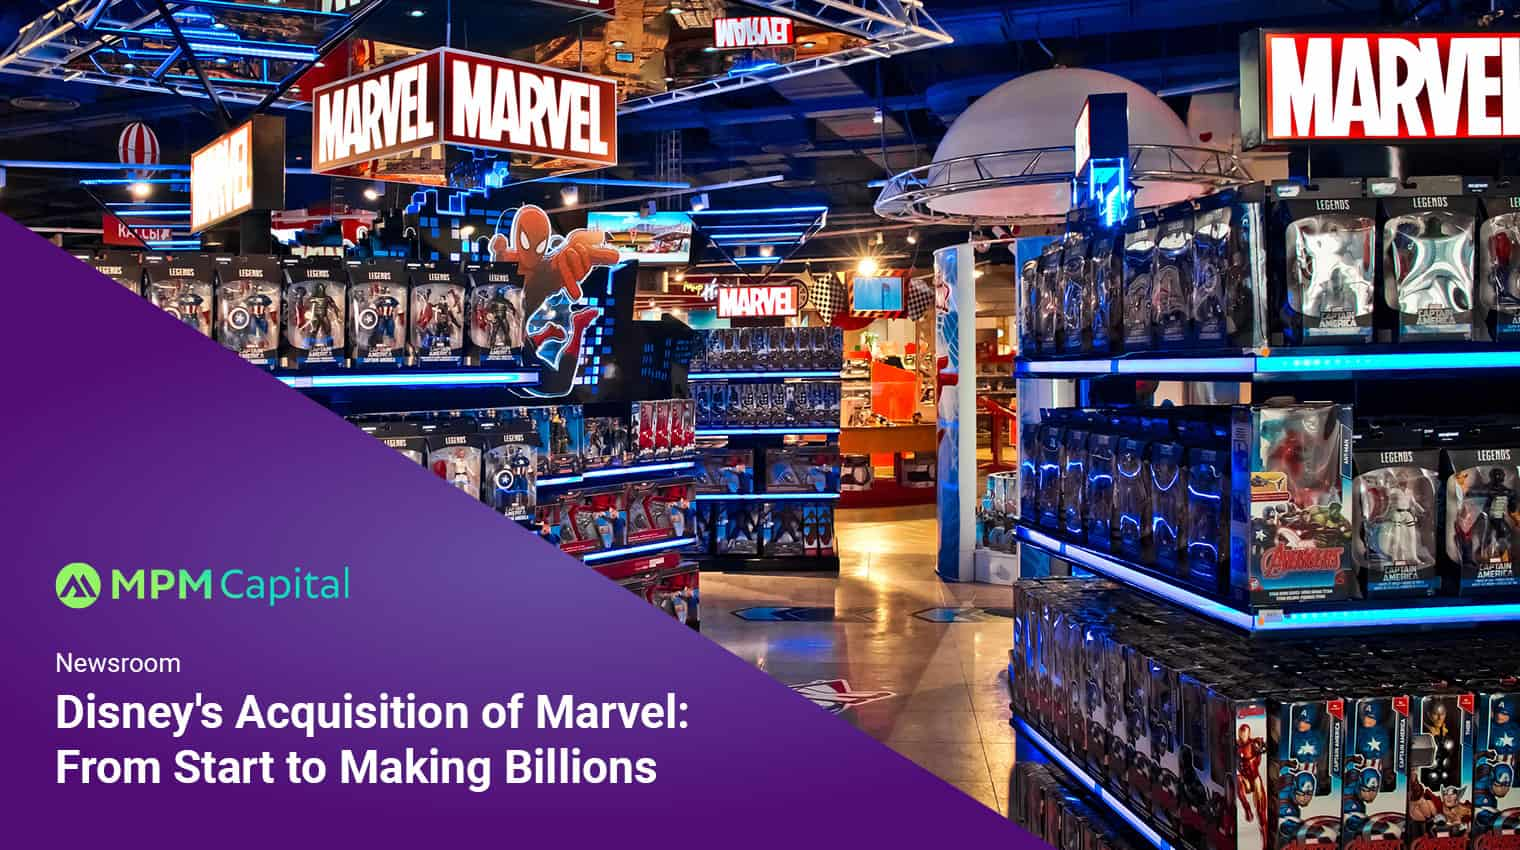 Disney's Acquisition of Marvel: From Start to Making Billions